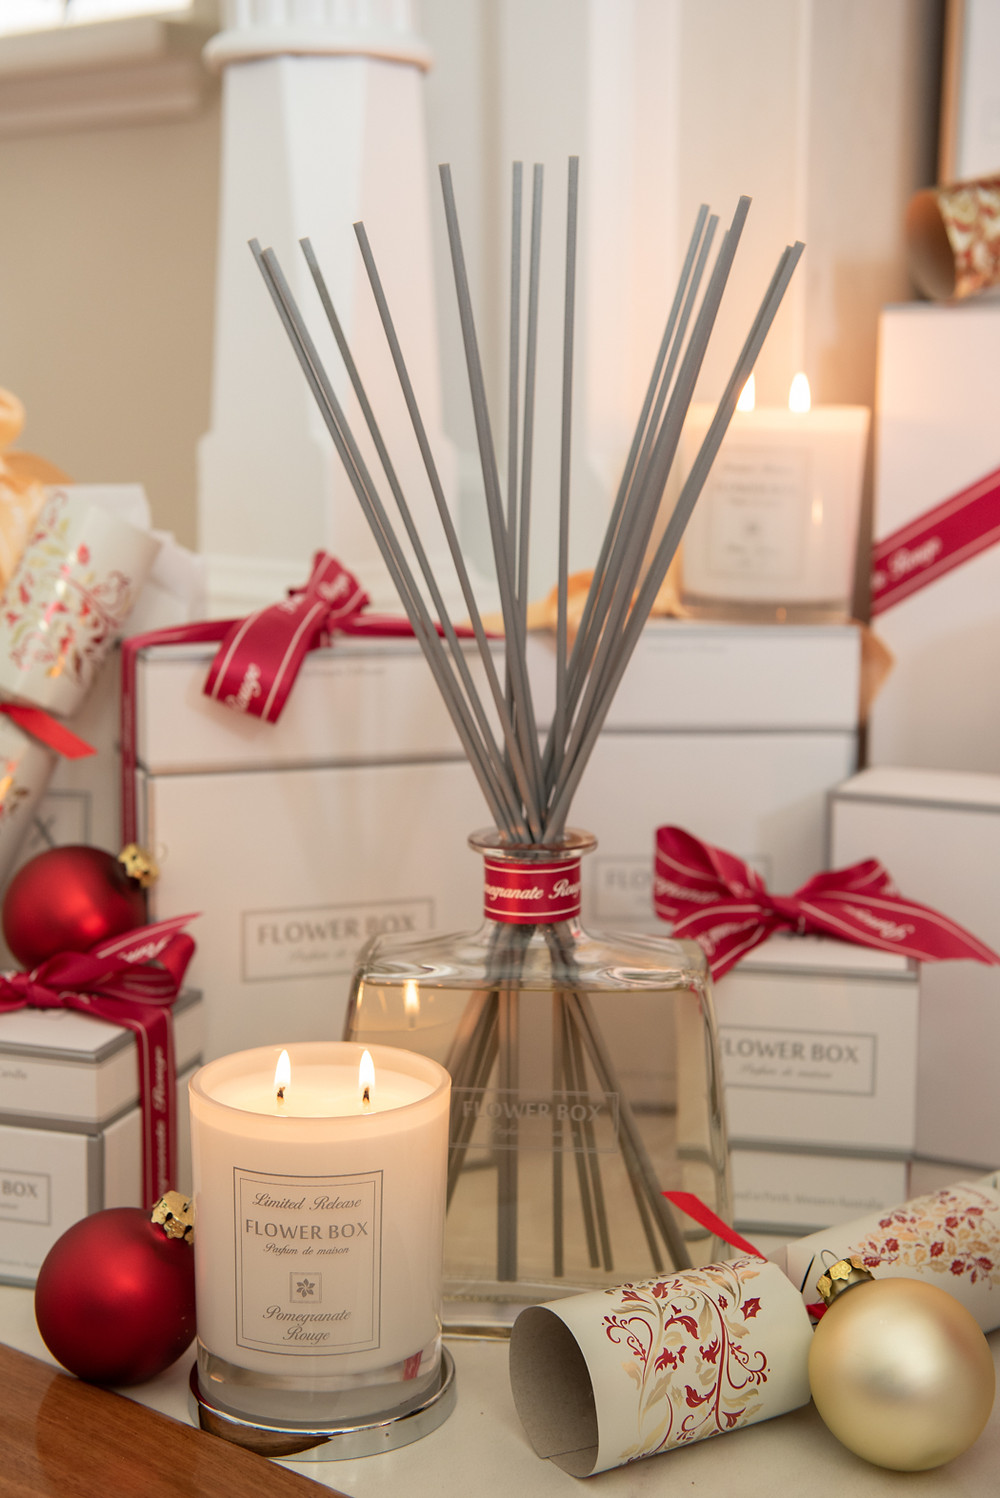 Flower Box Home Fragrance luxurious Candle and Diffuser